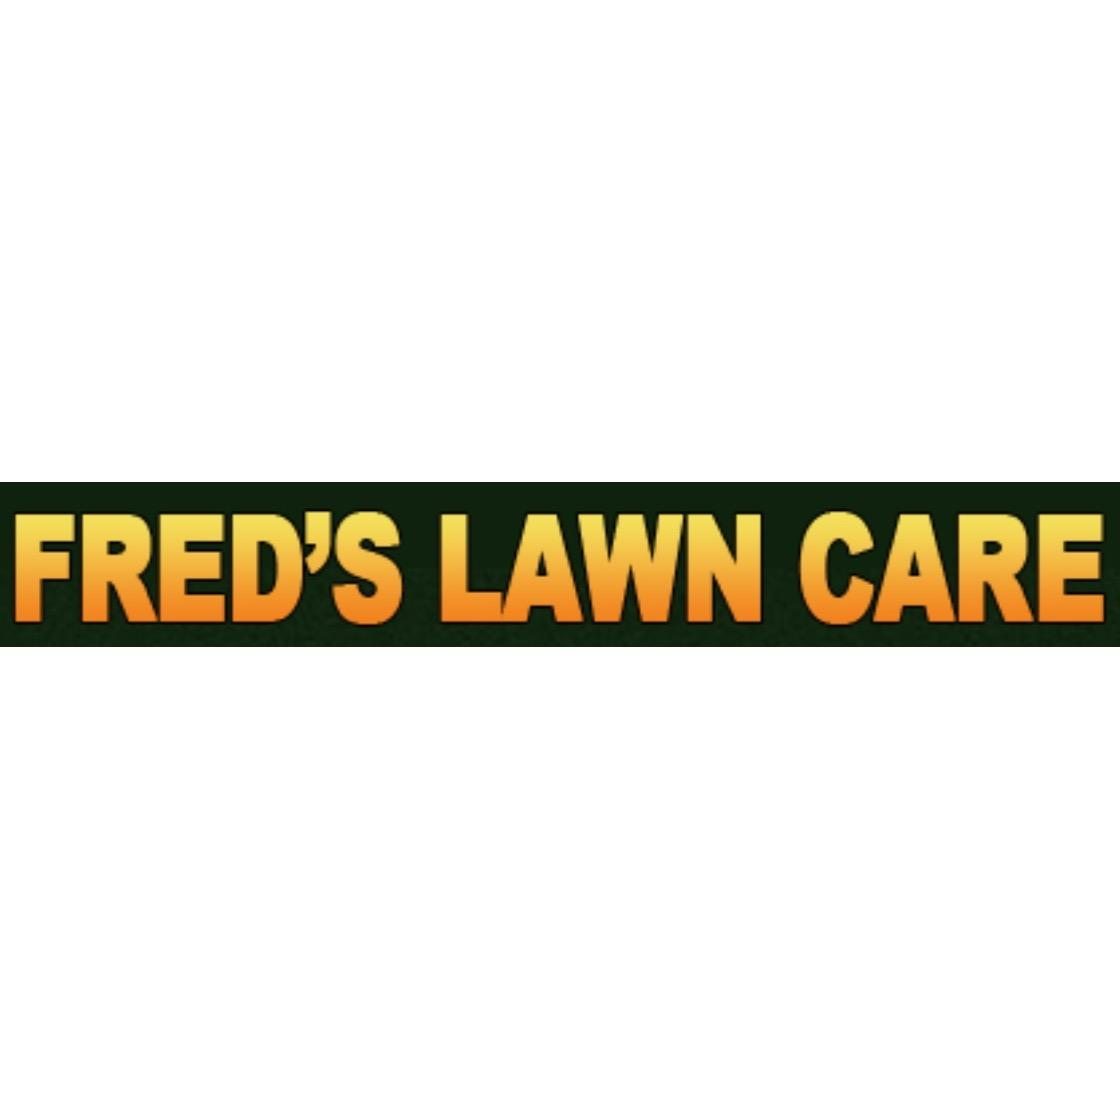 Fred's Lawn Care image 5